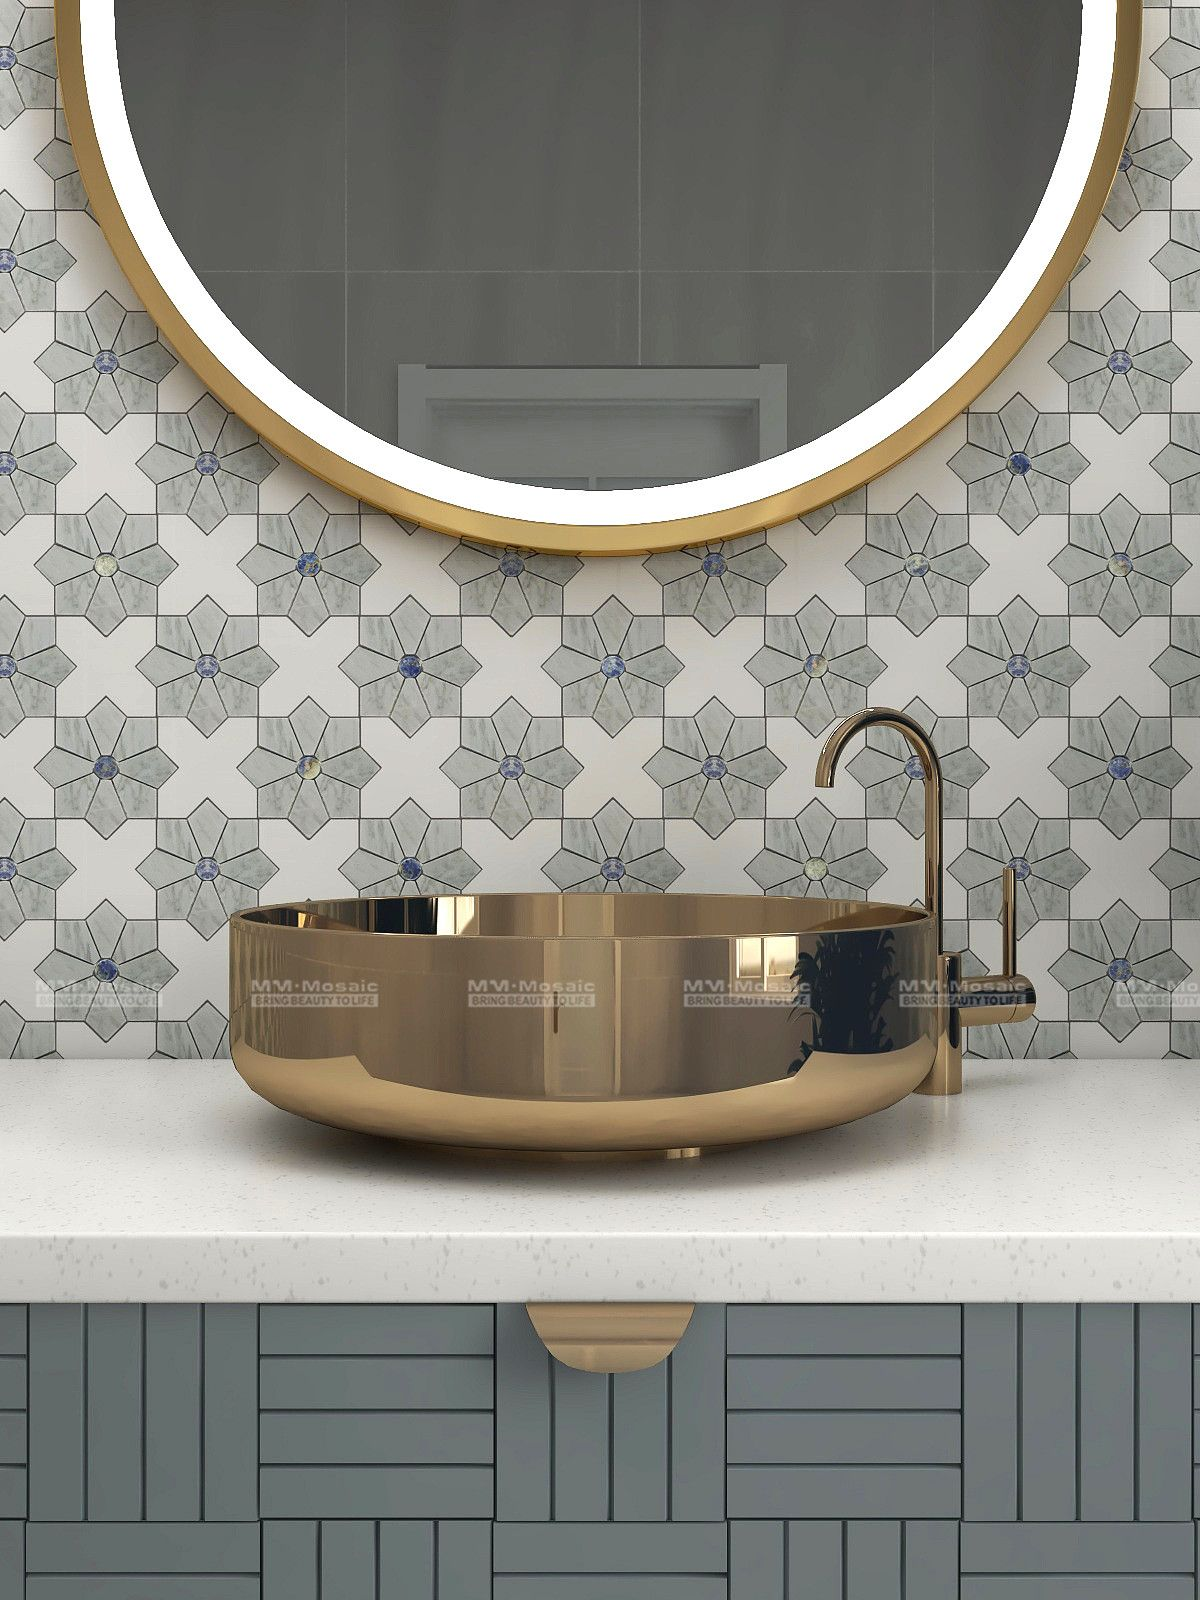 Bathroom Walls Project Dreaming of a funny bathroom walls decor? This unique wall renovation bring in a star-cross pattern and chic style.  #marblemosaic #waterjetmosaic #renovation #interiors #interiordesire #interiorforinspo #interiordesign #interiorinspiration  #renovationproject #homedecorideas #homedecor #homeimprovement #homedesign #homerenovation #newbuild #bathroomdecor #bathroomdesign #bathroomideas #bathroominspo #bathroomrenovation #granddesigns #walltiles #walldecor #starcross